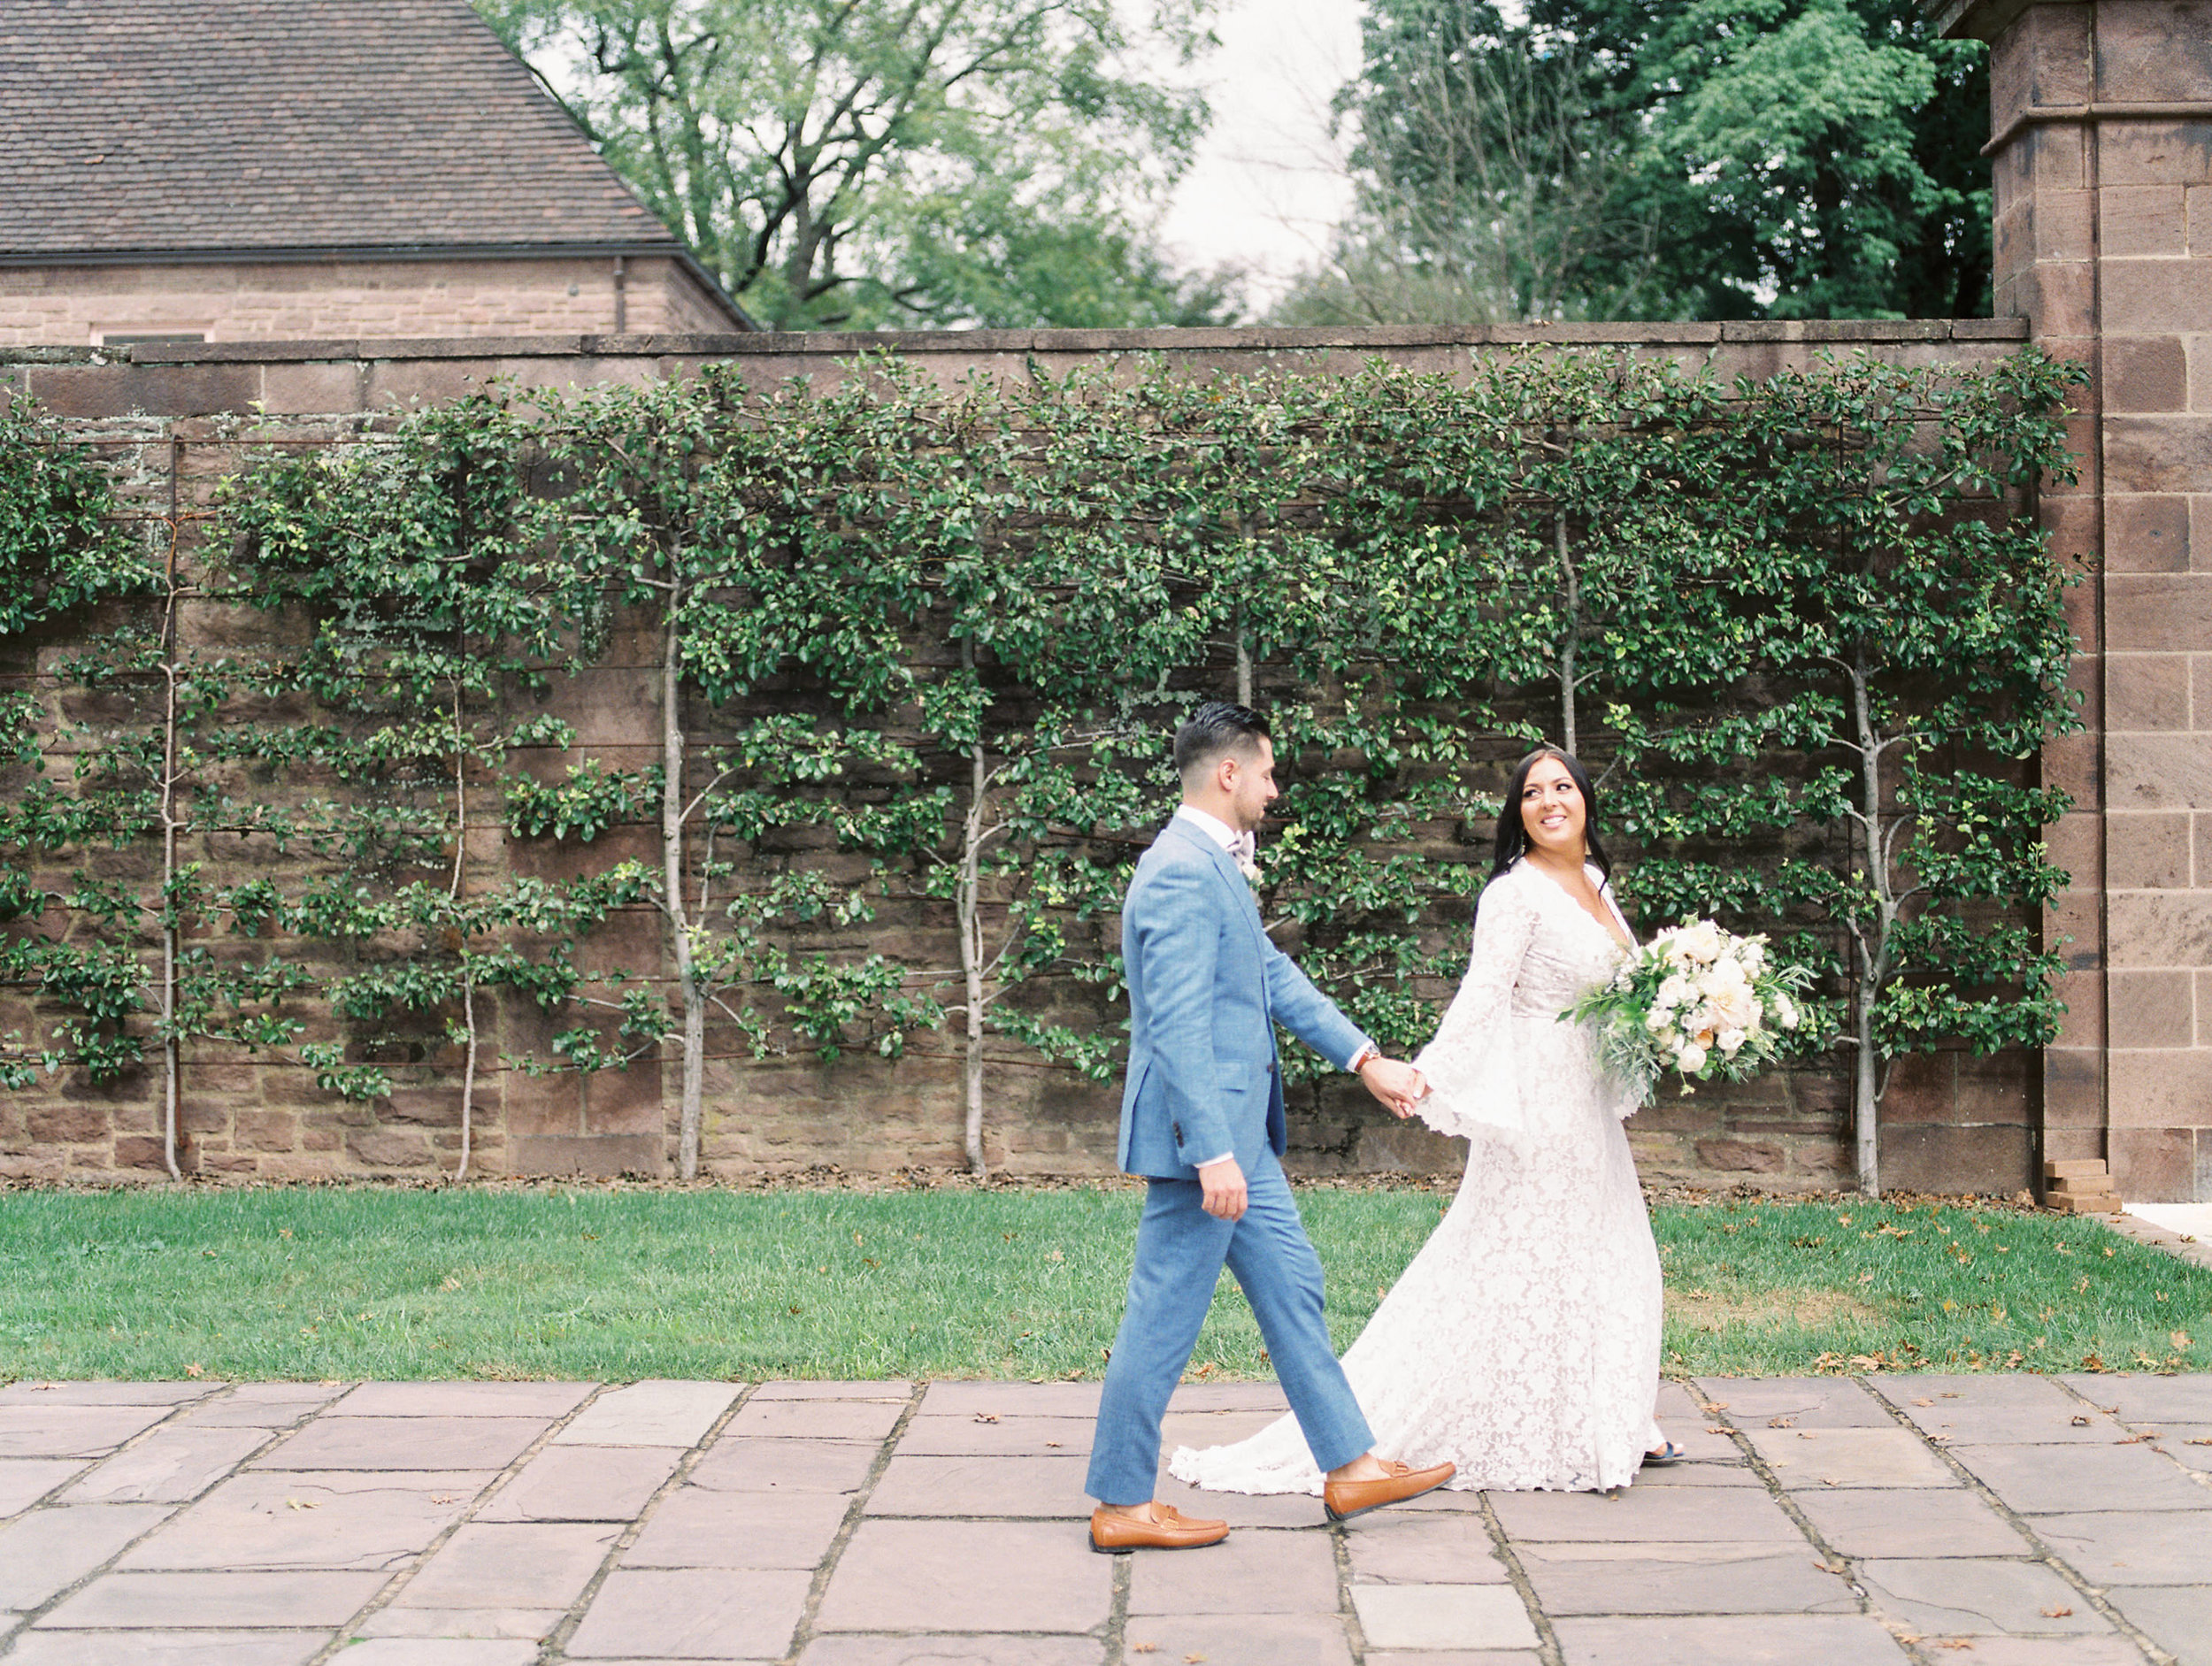 Walk with me, Alicia leads Mike into their bright boho chic Tyler Gardens wedding in Bucks County